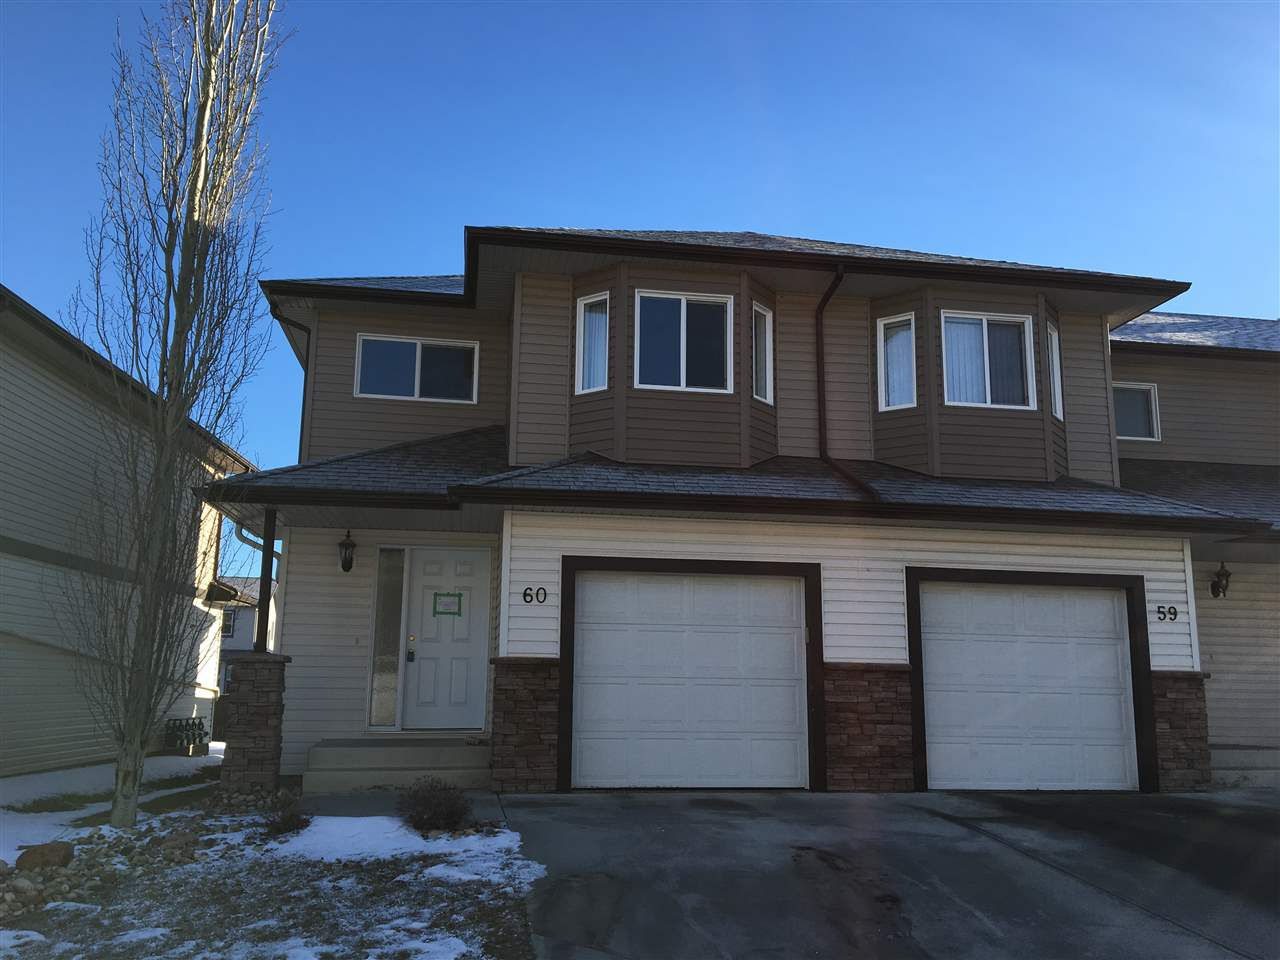 Main Photo: 60 171 BRINTNELL Boulevard in Edmonton: Zone 03 Townhouse for sale : MLS(r) # E4049409